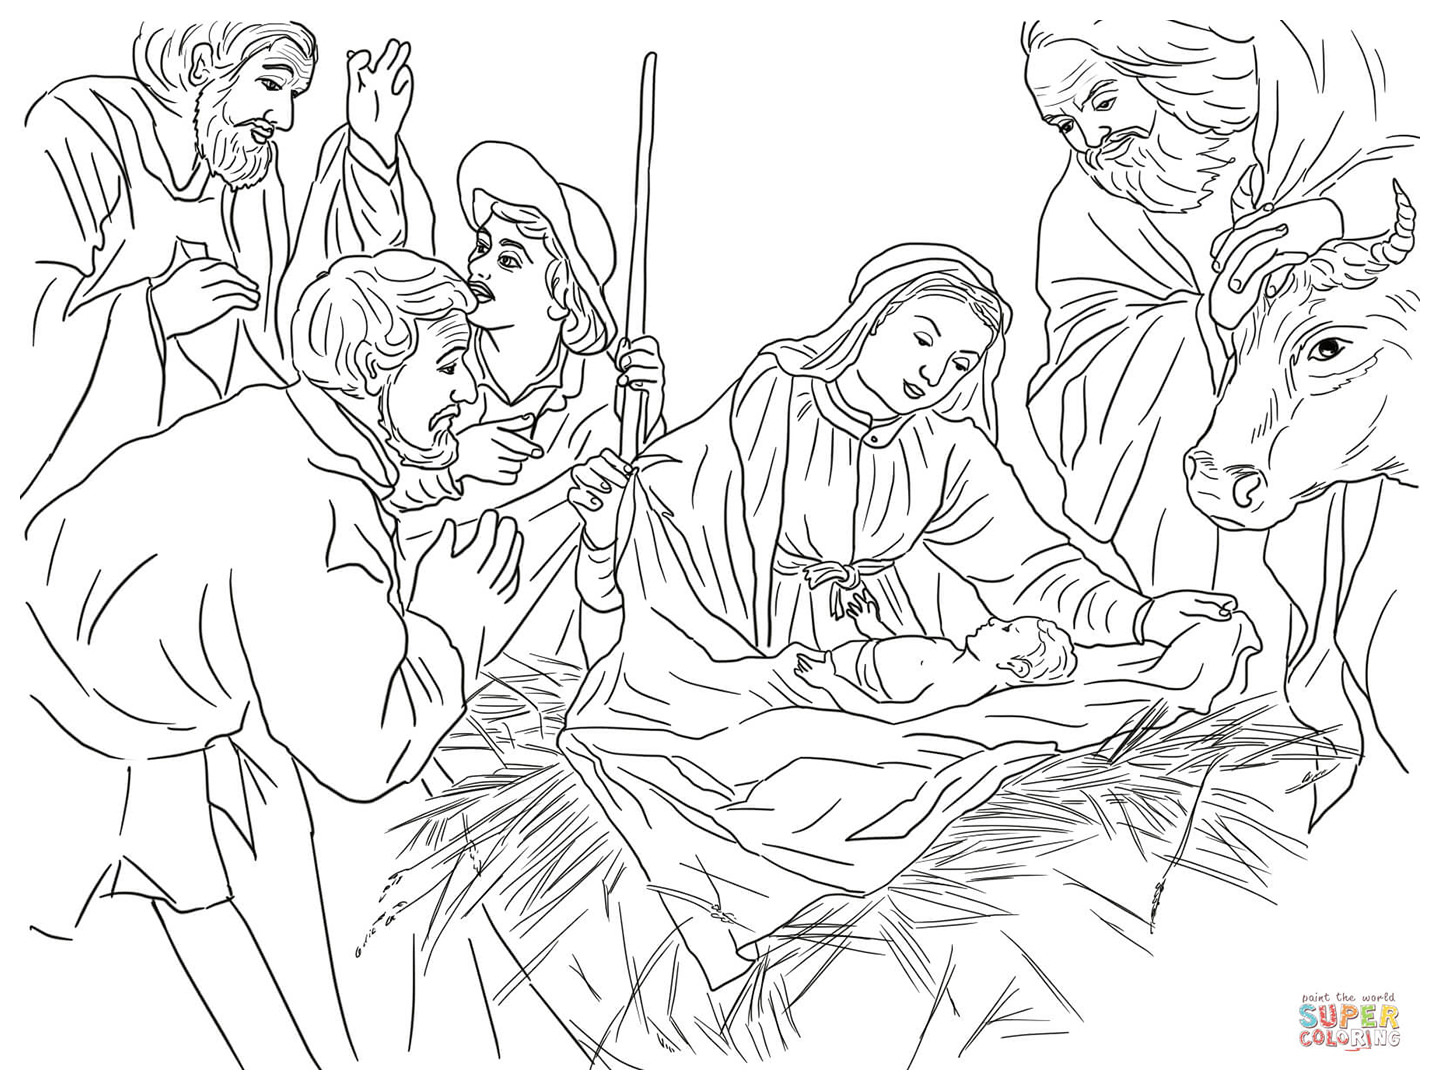 Angel Visits Joseph Coloring Page Free Christian Coloring Pages For Children And Adults Level 3